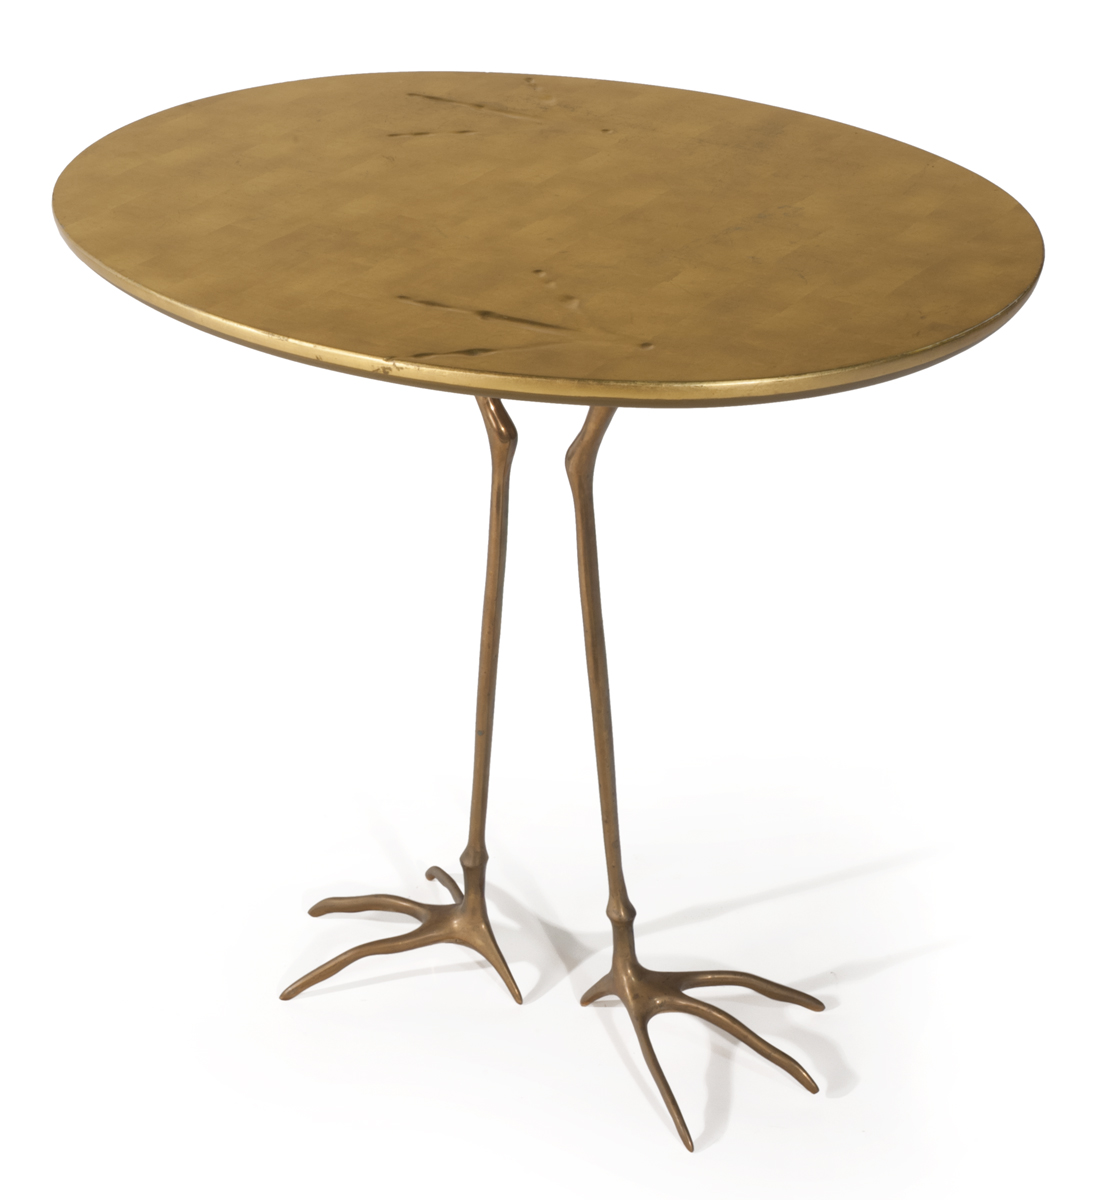 Traccia Table with Bird's Feet